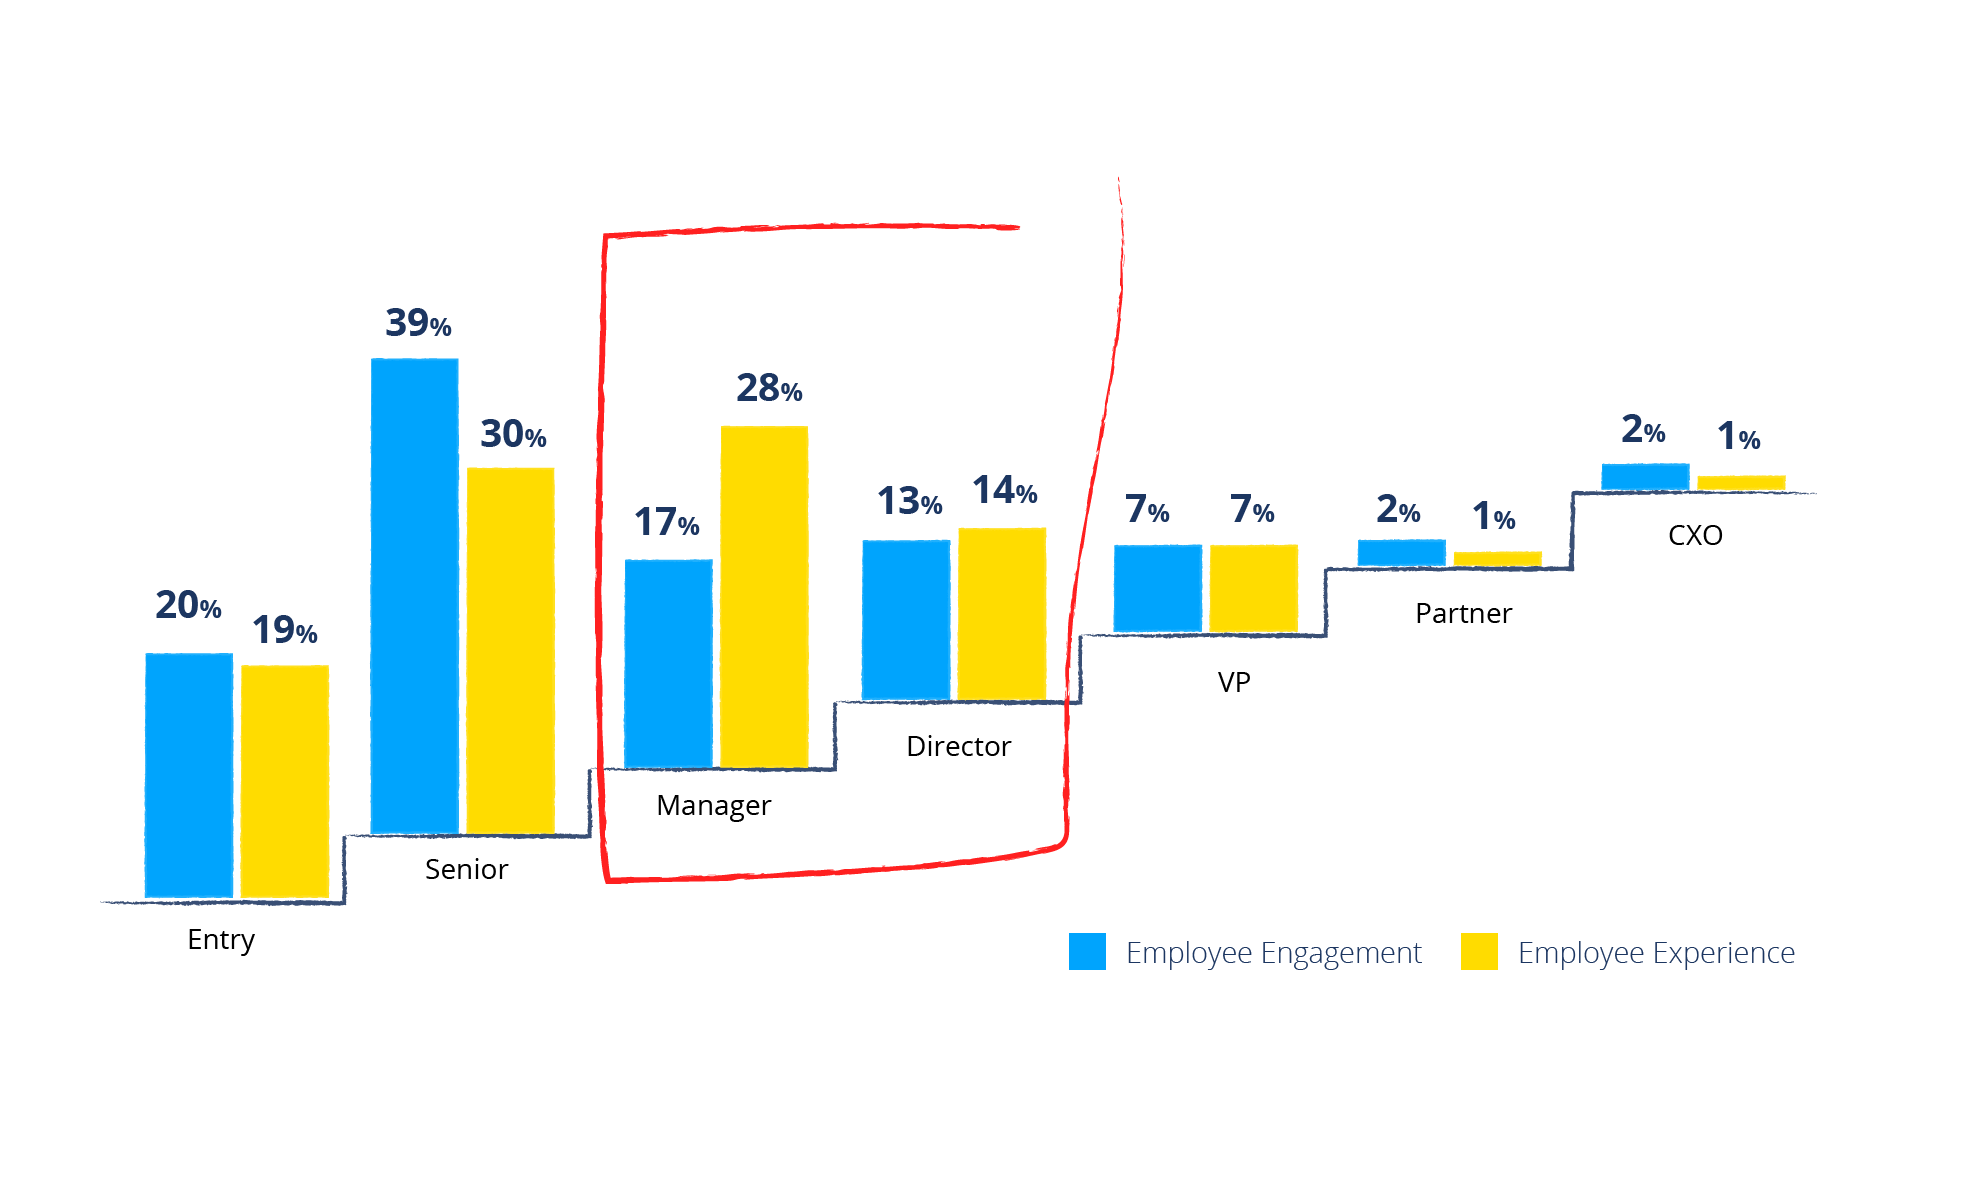 Study Employee Engagement versus Employee Experience Career Levels